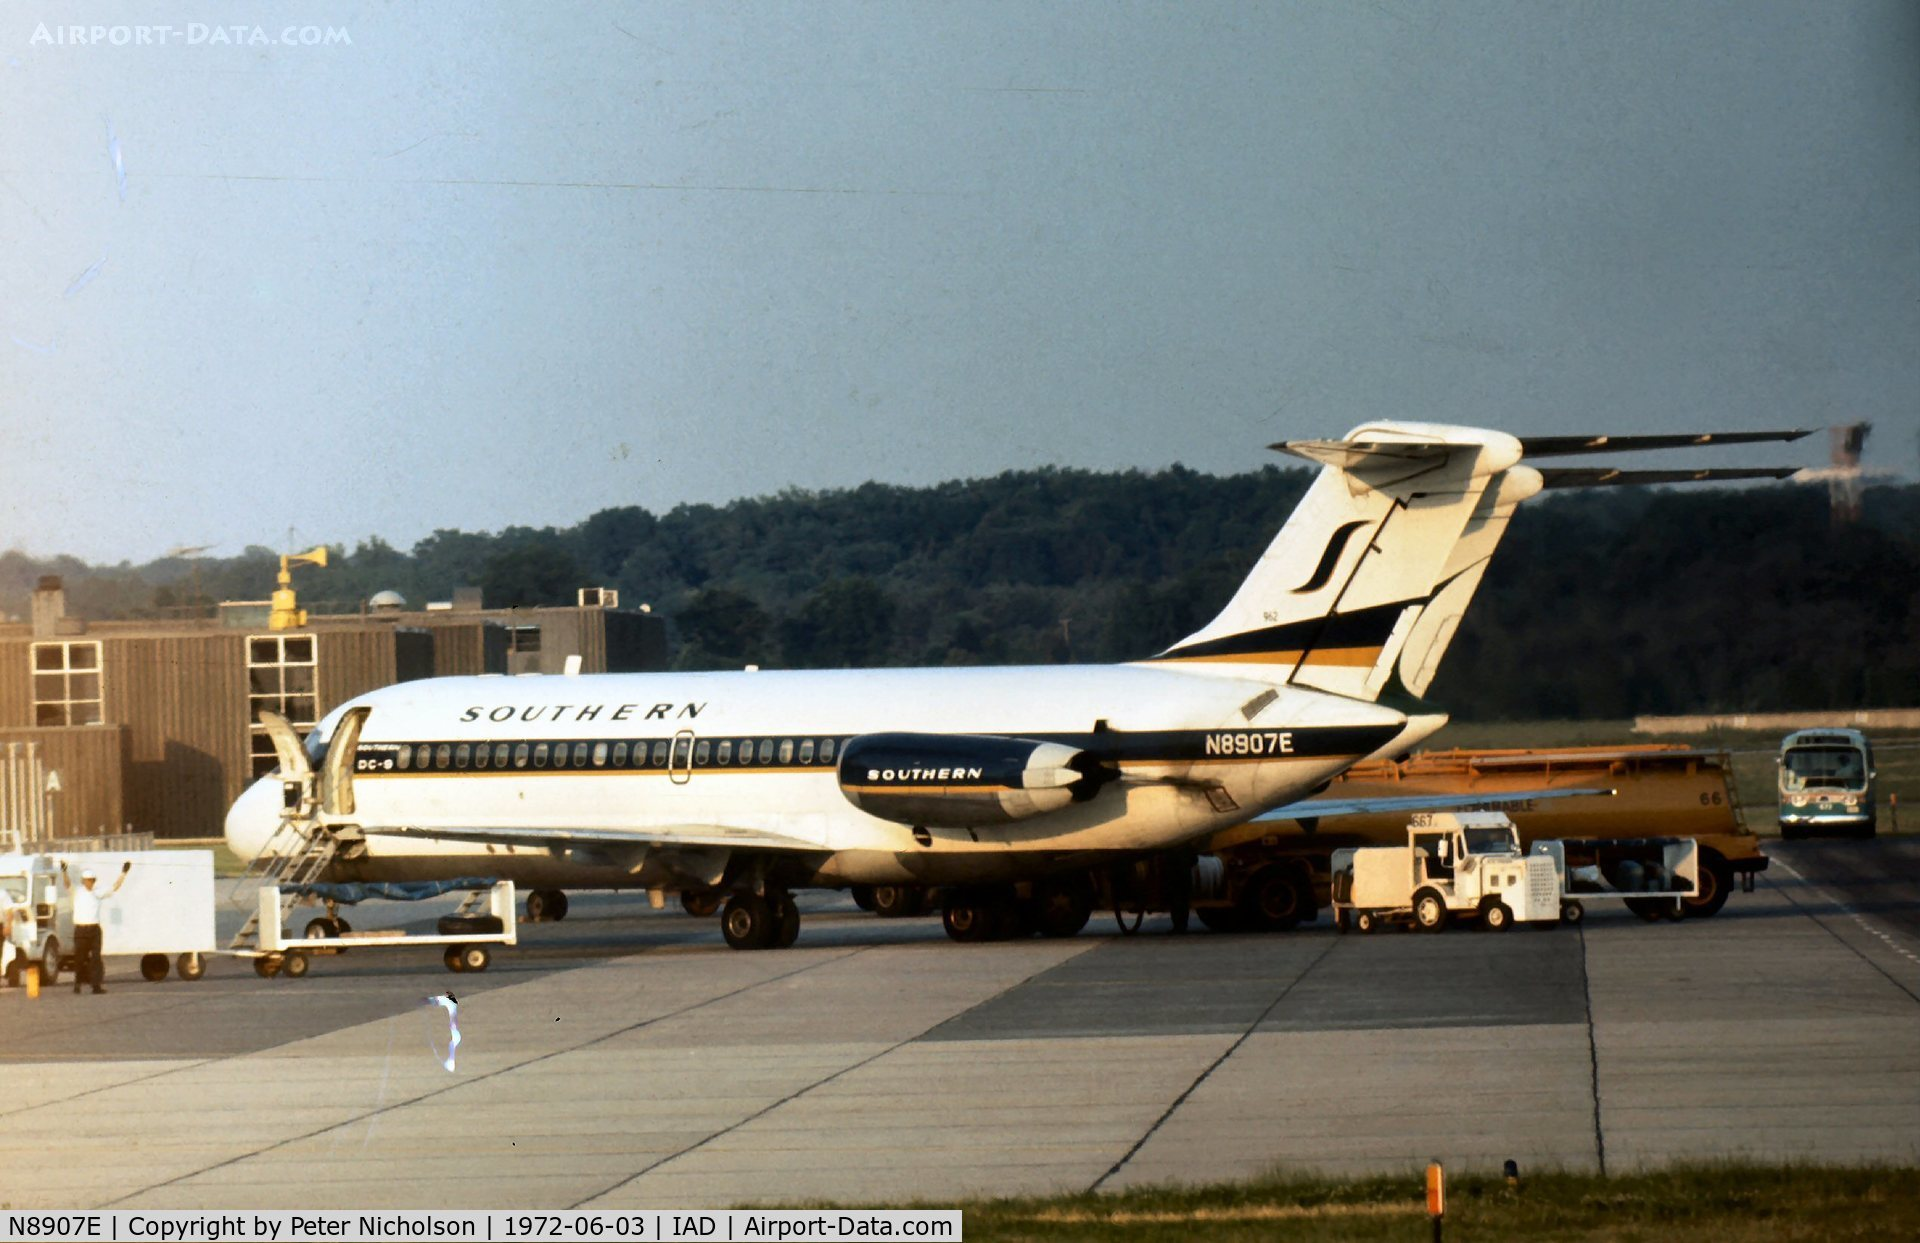 N8907E, Douglas DC-9-14 C/N 45748, This aircraft was operated by Southern Airways in 1972.